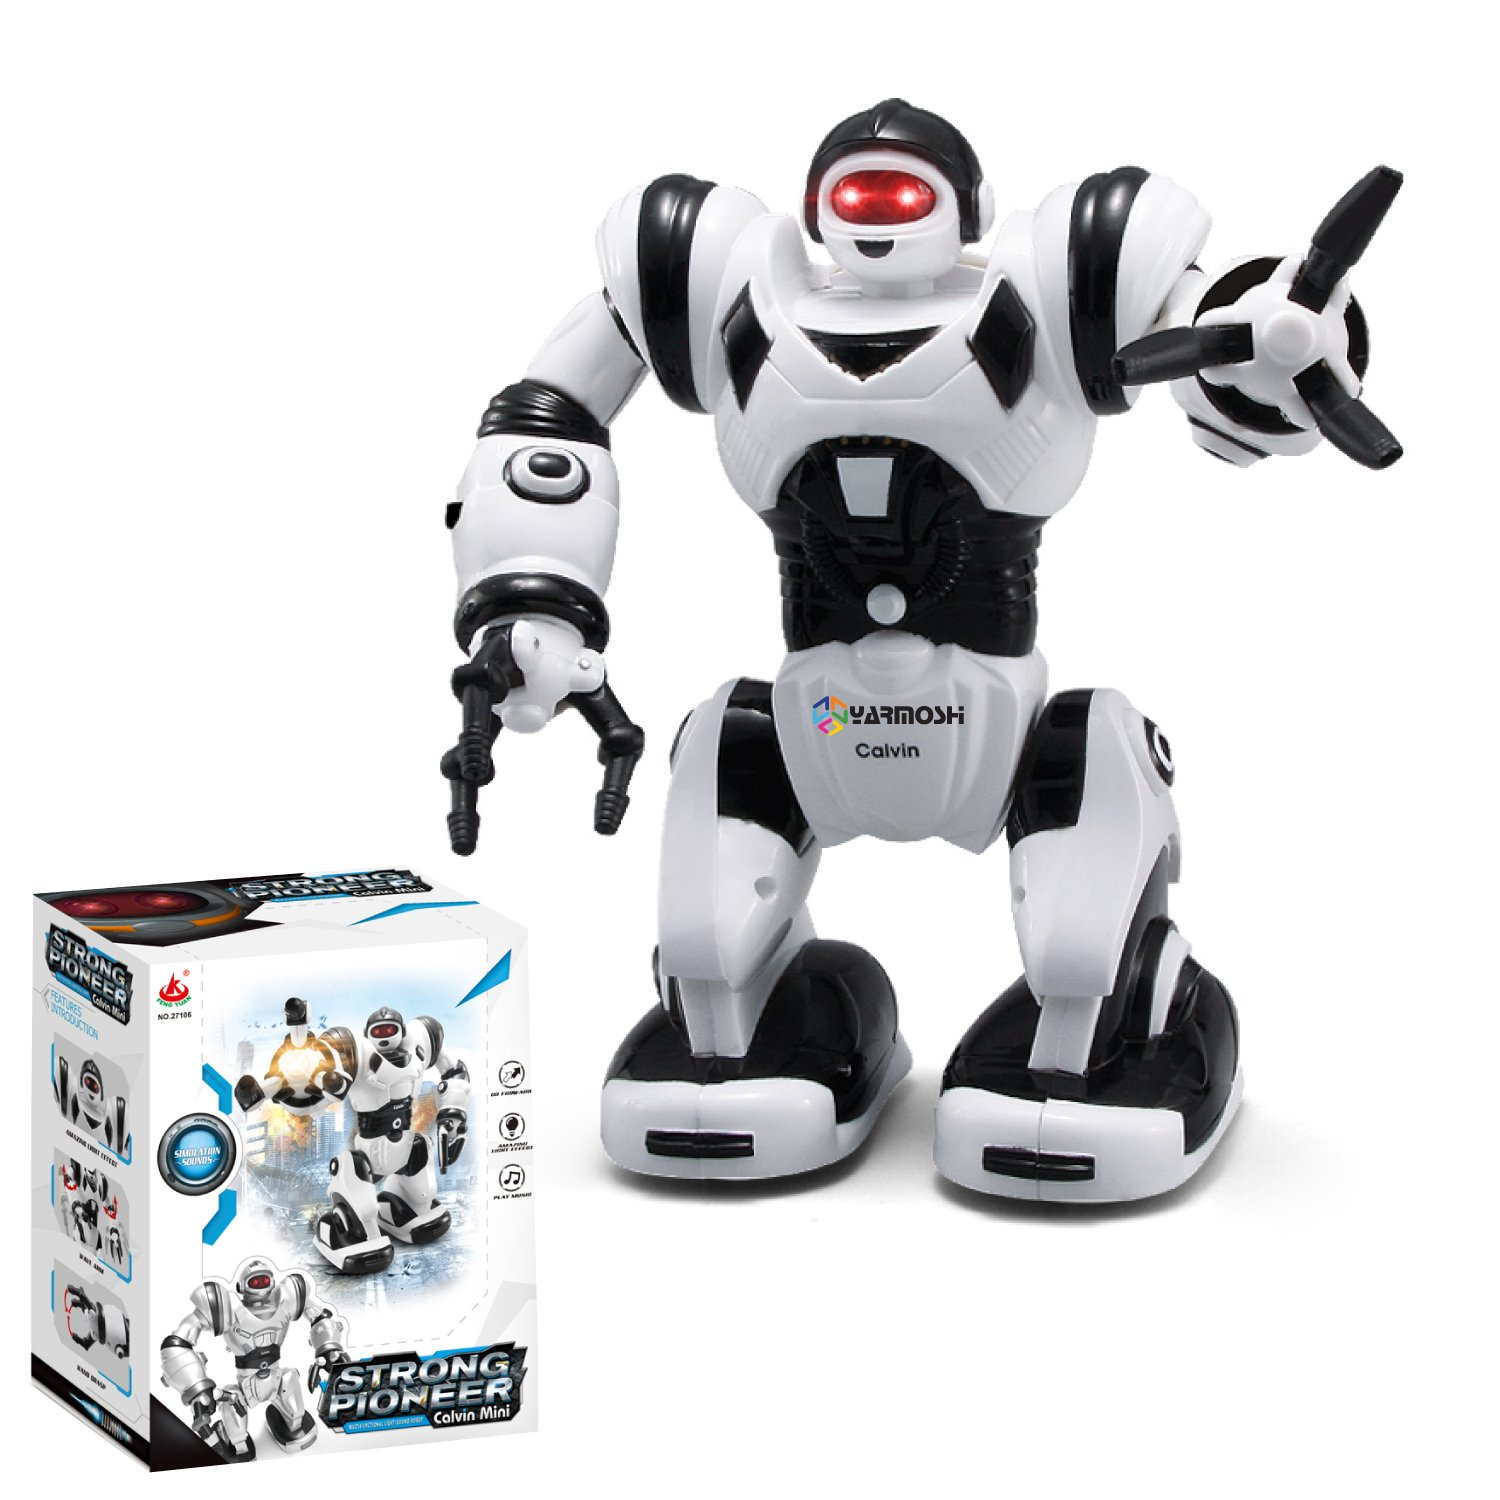 YARMOSHI Walking Robot Toy - Battery Operated, Flexible Moving Arms, Plays Music with Flashing Eyes.